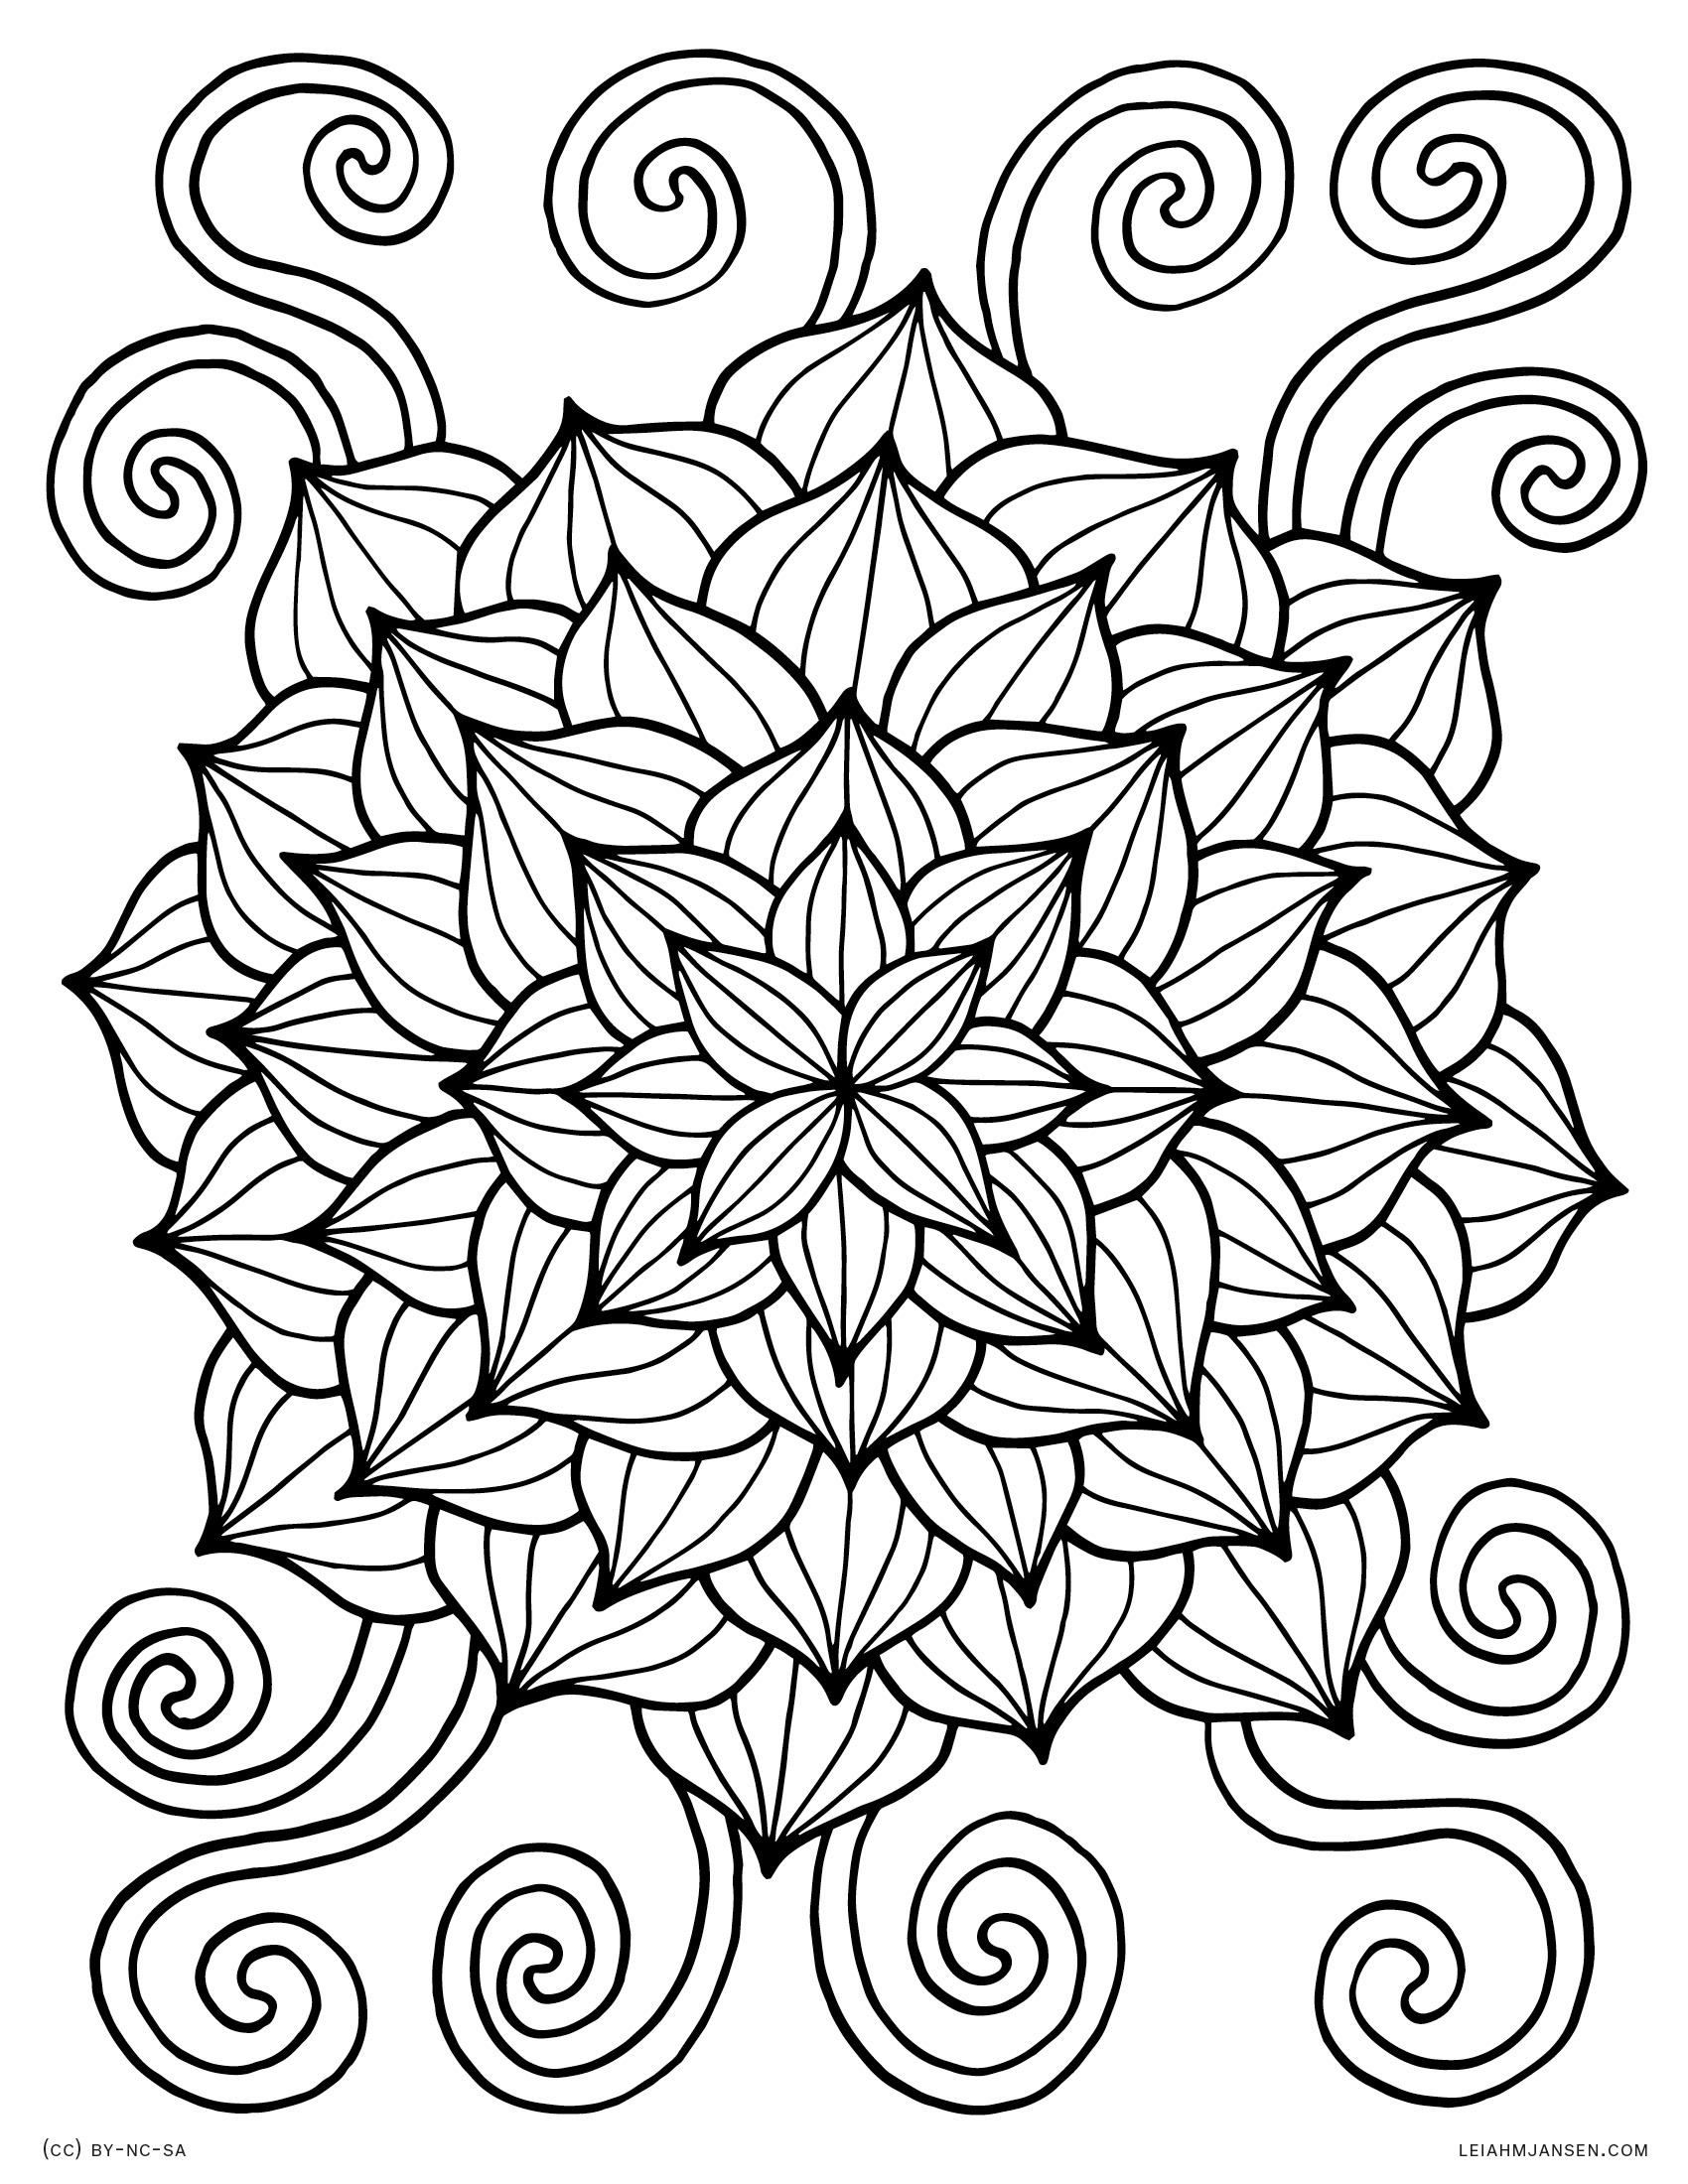 Coloring Pages - Free Coloring Pages Com Printable